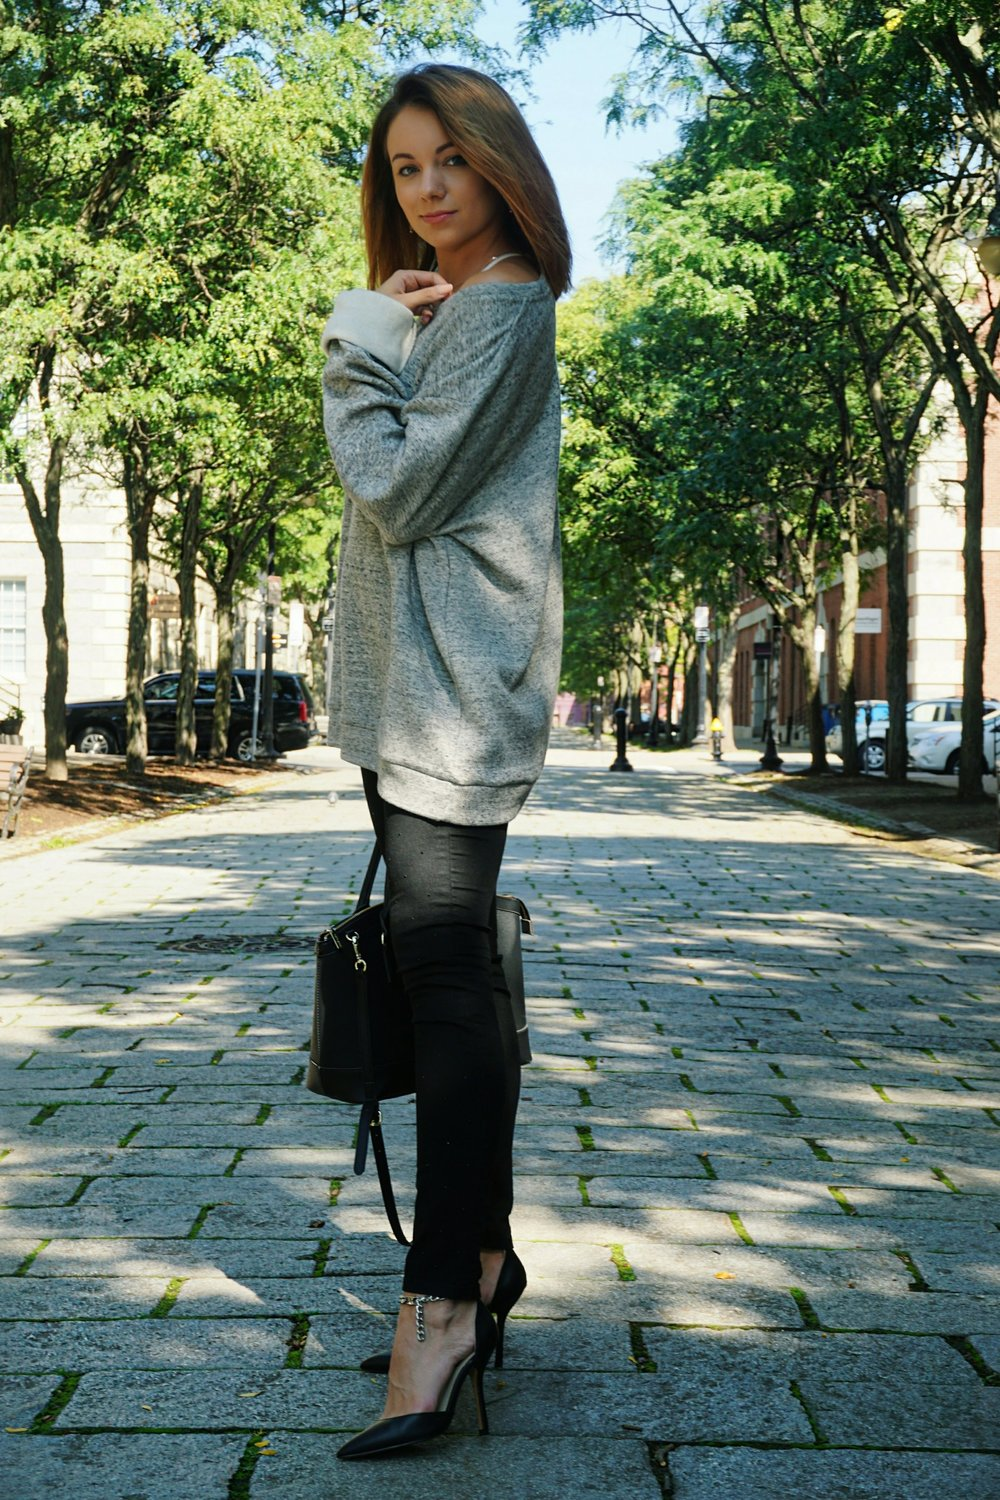 Fashion blogger wearing men's oversized gray sweater, black denim pants, black heels, and black big bag.